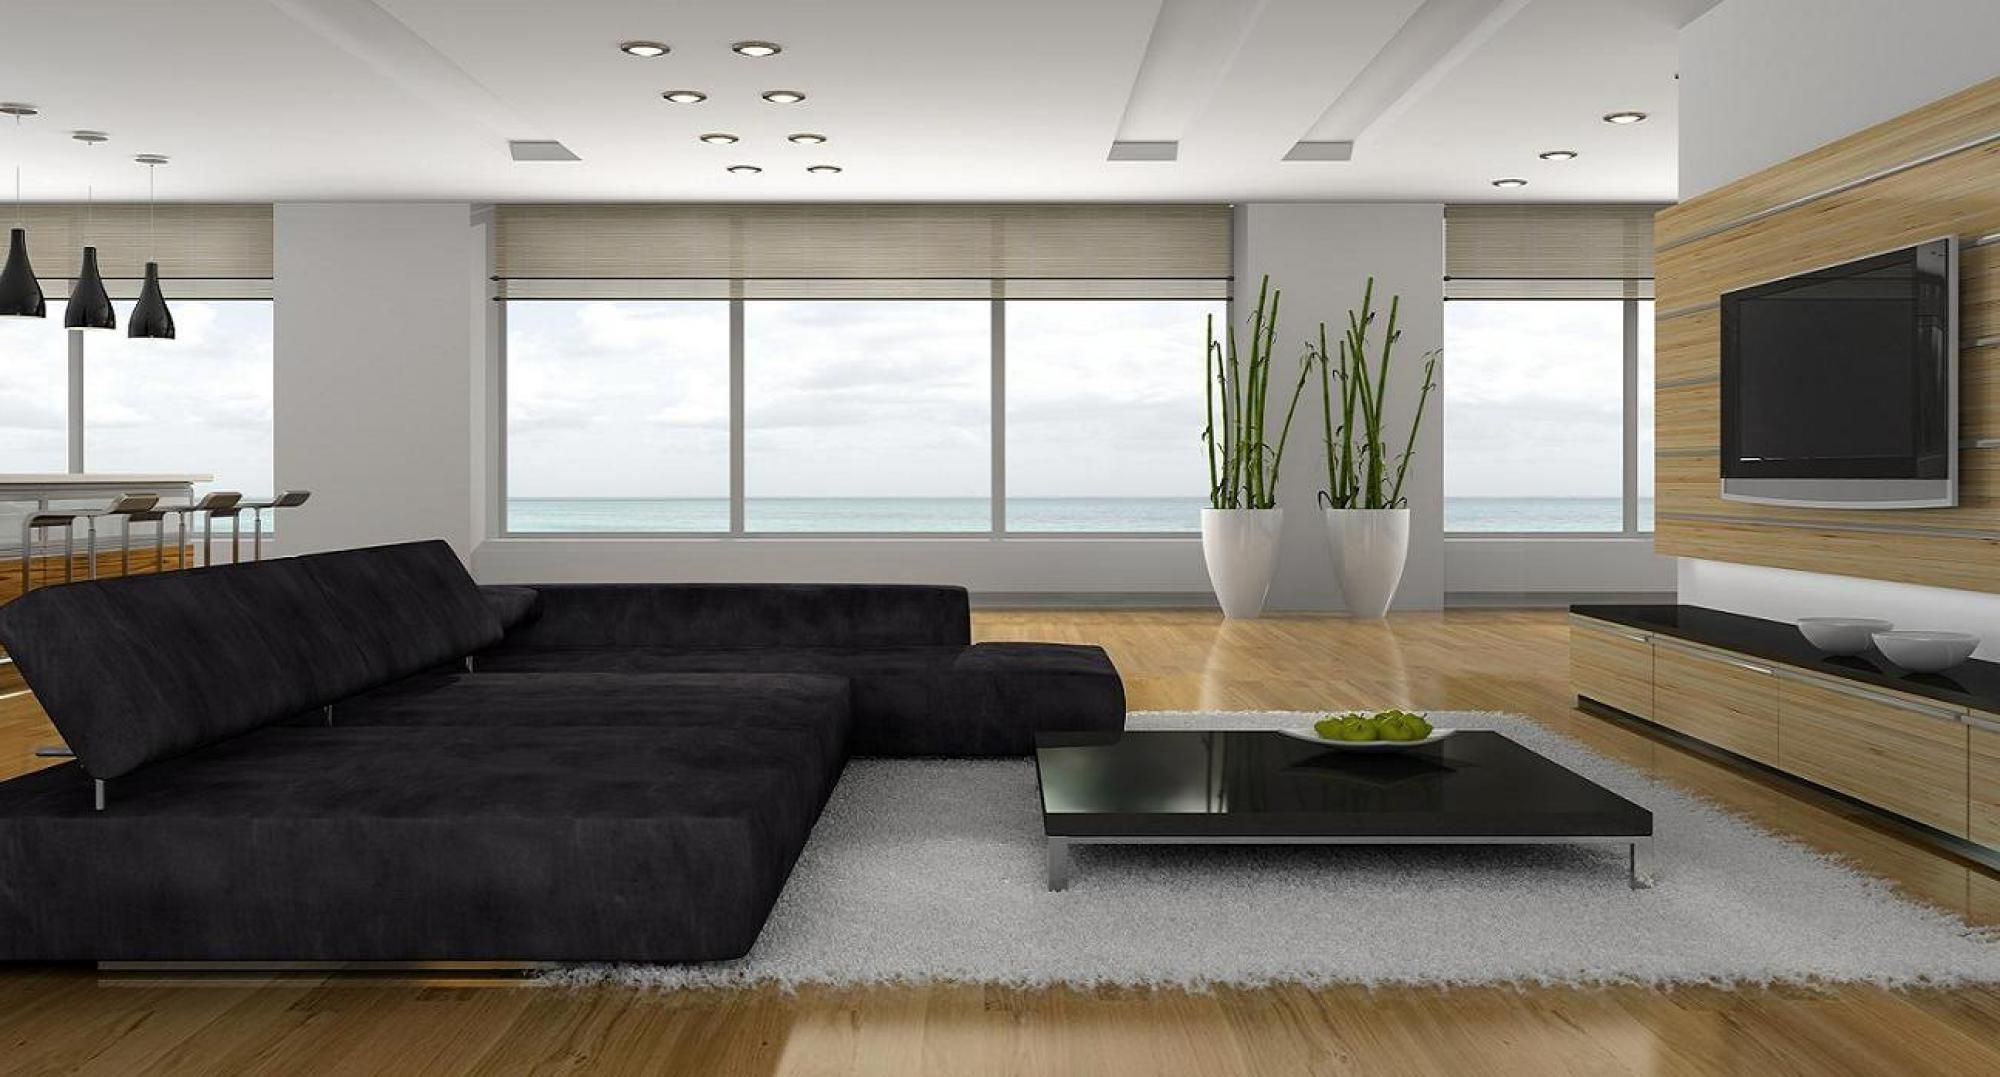 Enchanting Modern Design In Living Room With Gray Sofa Bed Plus